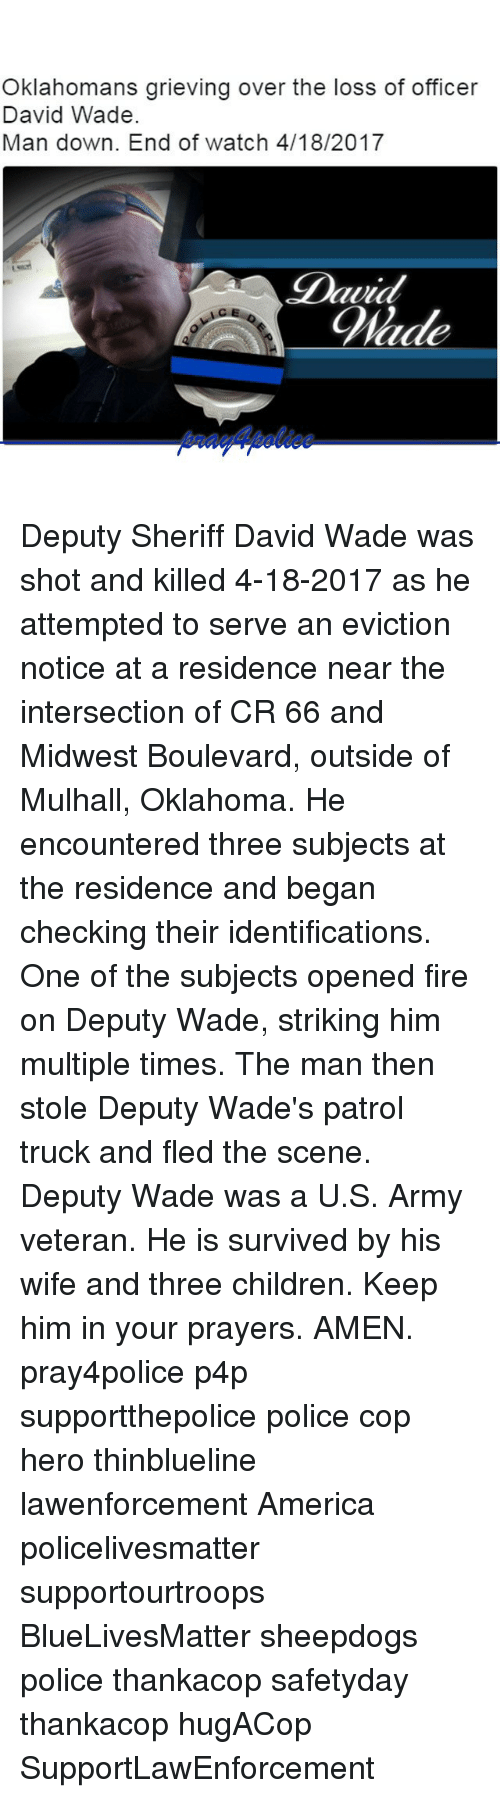 boulevard: Oklahomans grieving over the loss of officer  David Wade.  Man down. End of watch 4/18/2017  Blade Deputy Sheriff David Wade was shot and killed 4-18-2017 as he attempted to serve an eviction notice at a residence near the intersection of CR 66 and Midwest Boulevard, outside of Mulhall, Oklahoma. He encountered three subjects at the residence and began checking their identifications. One of the subjects opened fire on Deputy Wade, striking him multiple times. The man then stole Deputy Wade's patrol truck and fled the scene. Deputy Wade was a U.S. Army veteran. He is survived by his wife and three children. Keep him in your prayers. AMEN. pray4police p4p supportthepolice police cop hero thinblueline lawenforcement America policelivesmatter supportourtroops BlueLivesMatter sheepdogs police thankacop safetyday thankacop hugACop SupportLawEnforcement